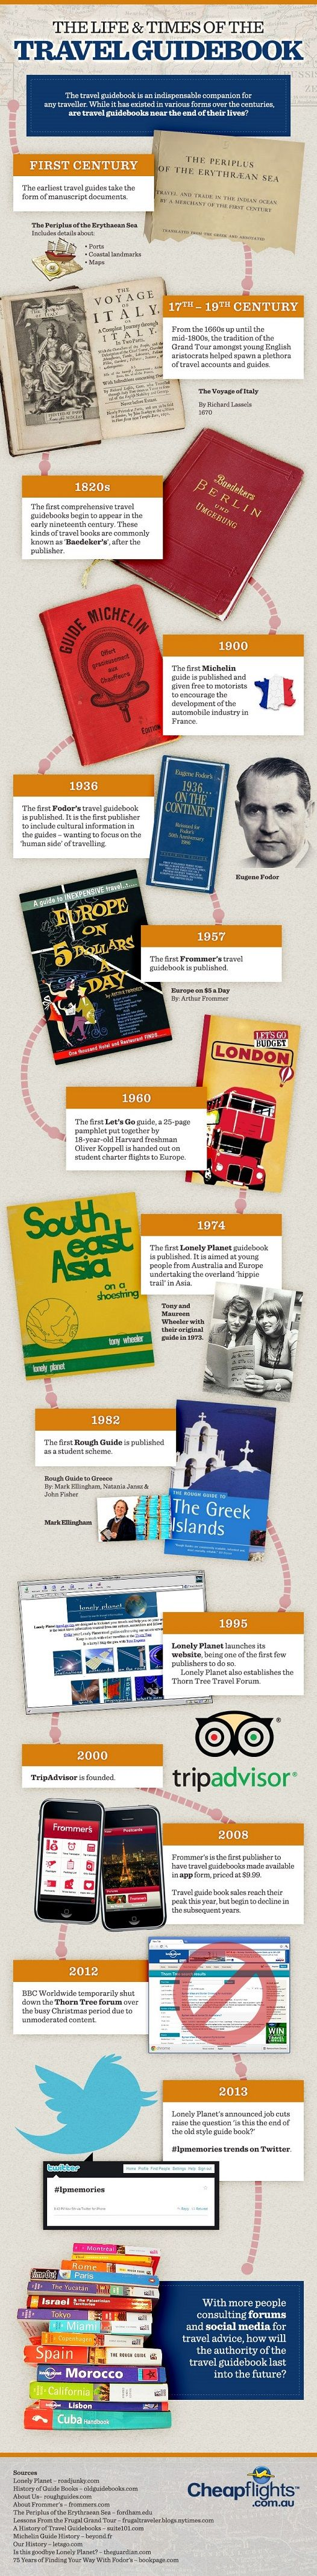 #INFOgraphic > The Fall of Travel Guide Books: Not long ago, once you decided to go abroad, travel guide books were the soft and secure option to get prepared and learn things about the country you would visit. But now…? Things are turning more and more wired – or even wireless. This infographic looks at how travel guides have... > http://infographicsmania.com/the-fall-of-travel-guide-books/?utm_source=Pinterest&utm_medium=INFOGRAPHICSMANIA&utm_campaign=SNAP